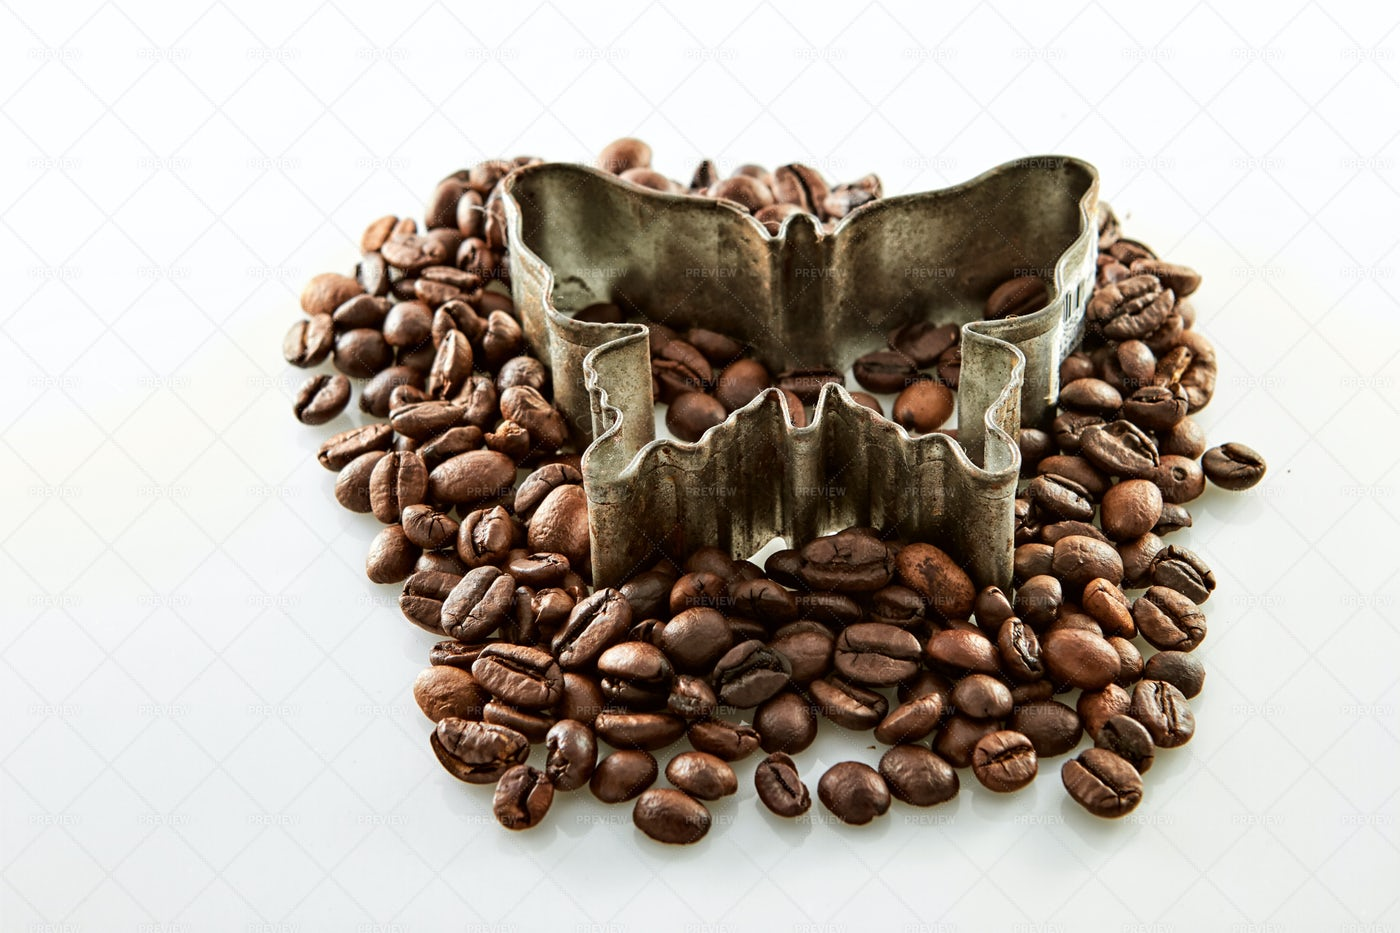 Coffee Beans Around Butterfly Shape: Stock Photos